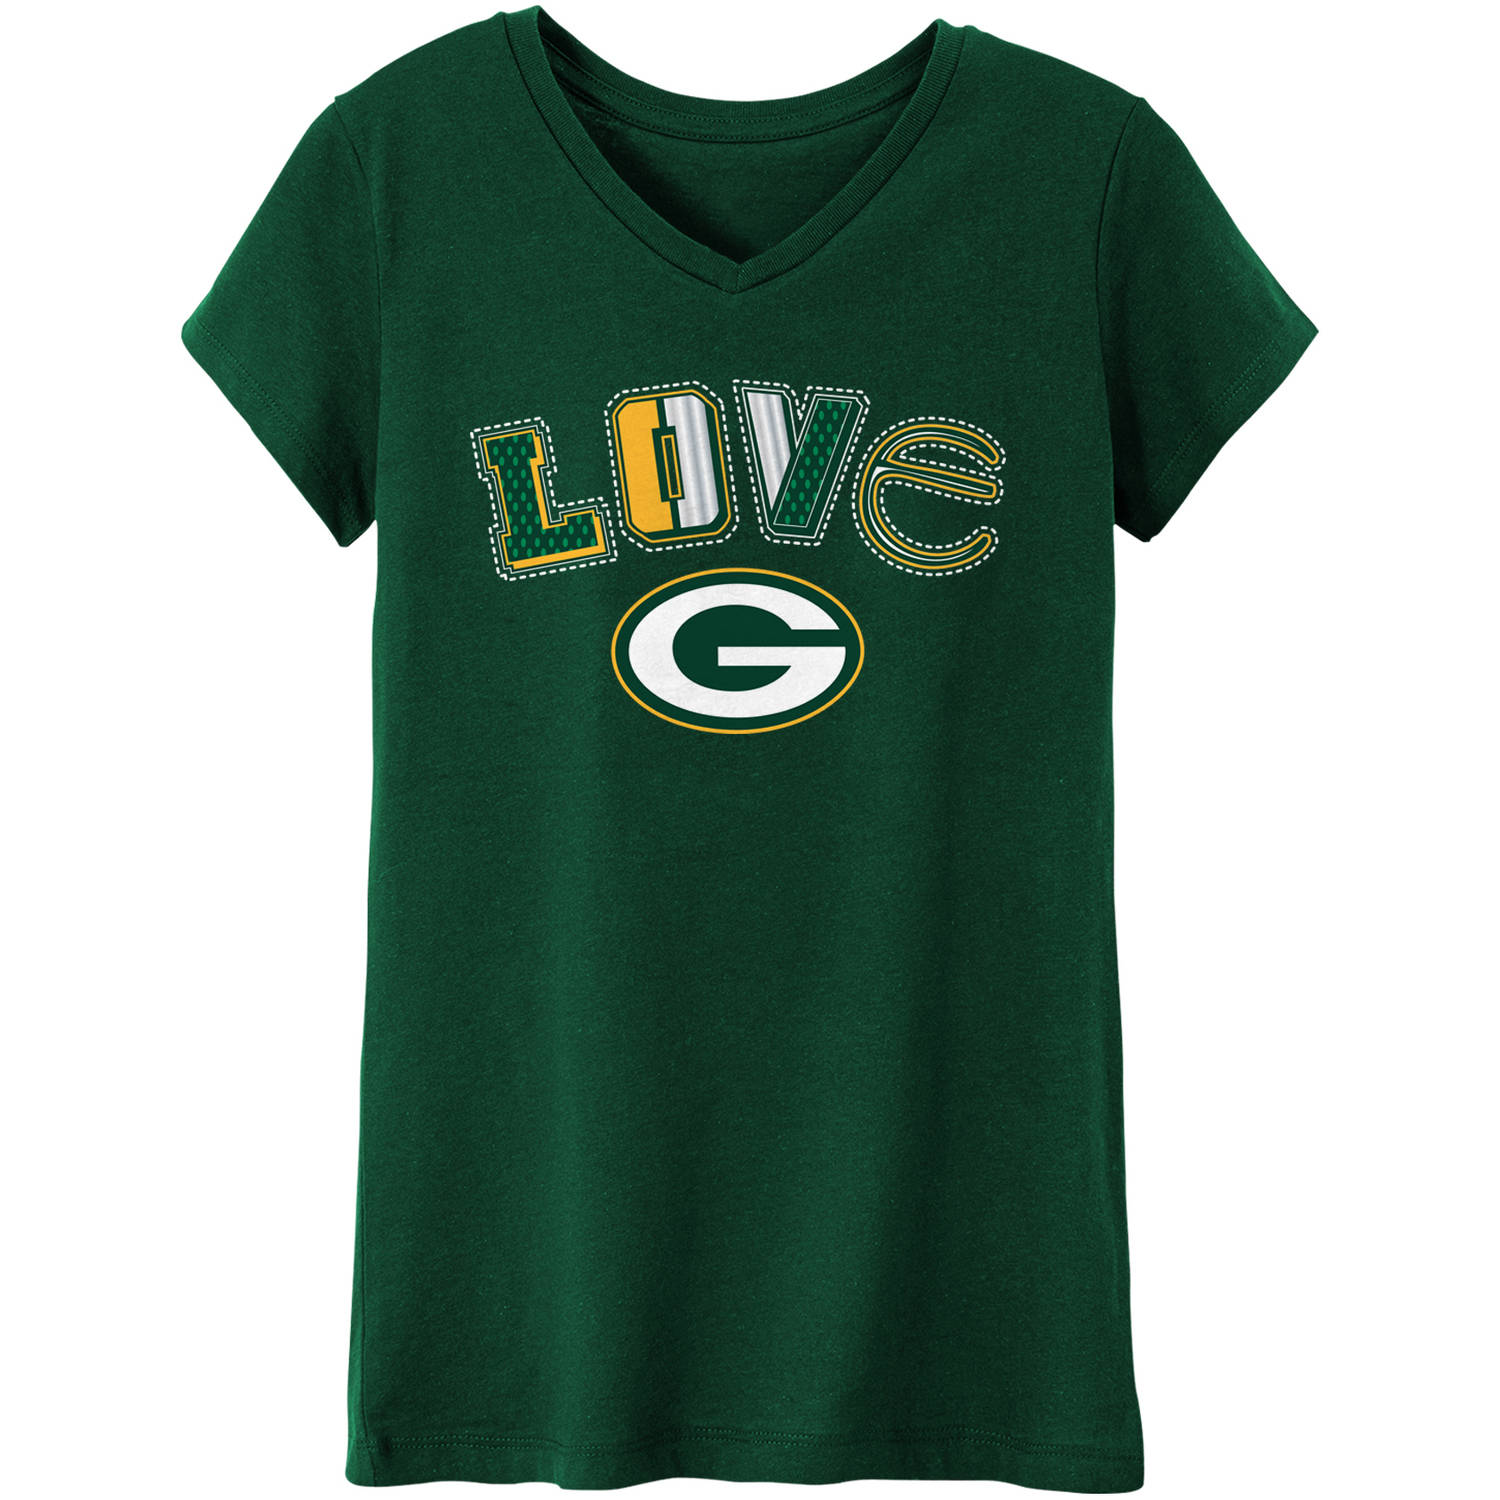 NFL Green Bay Packers Girls Short Sleeve Cotton Tee